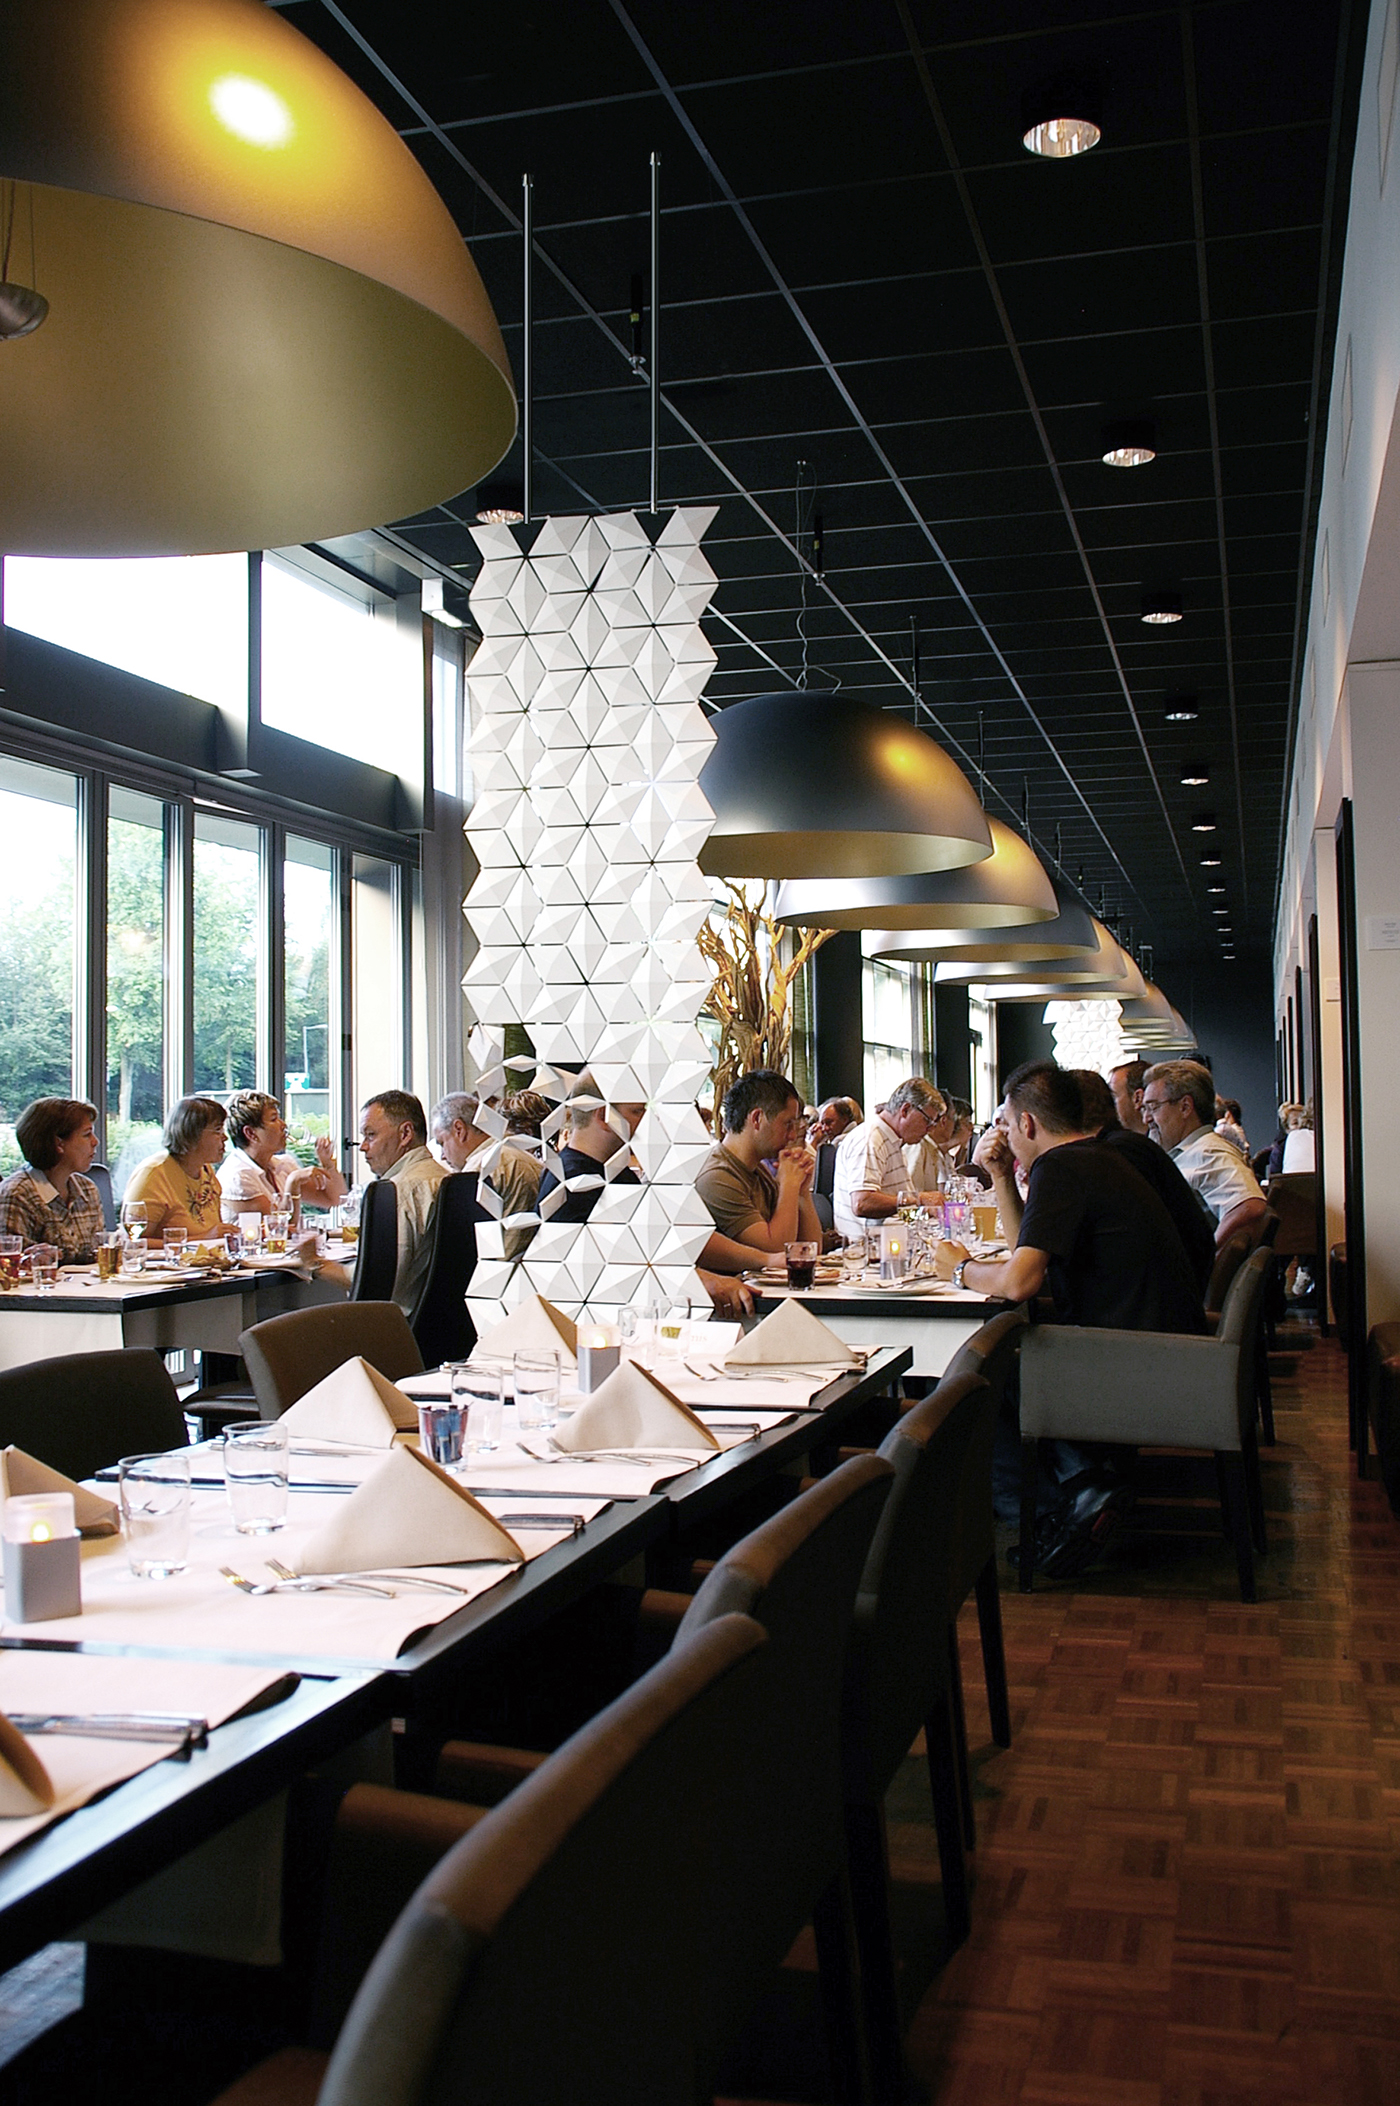 5.Modern Dividers In Cafes and Hotels